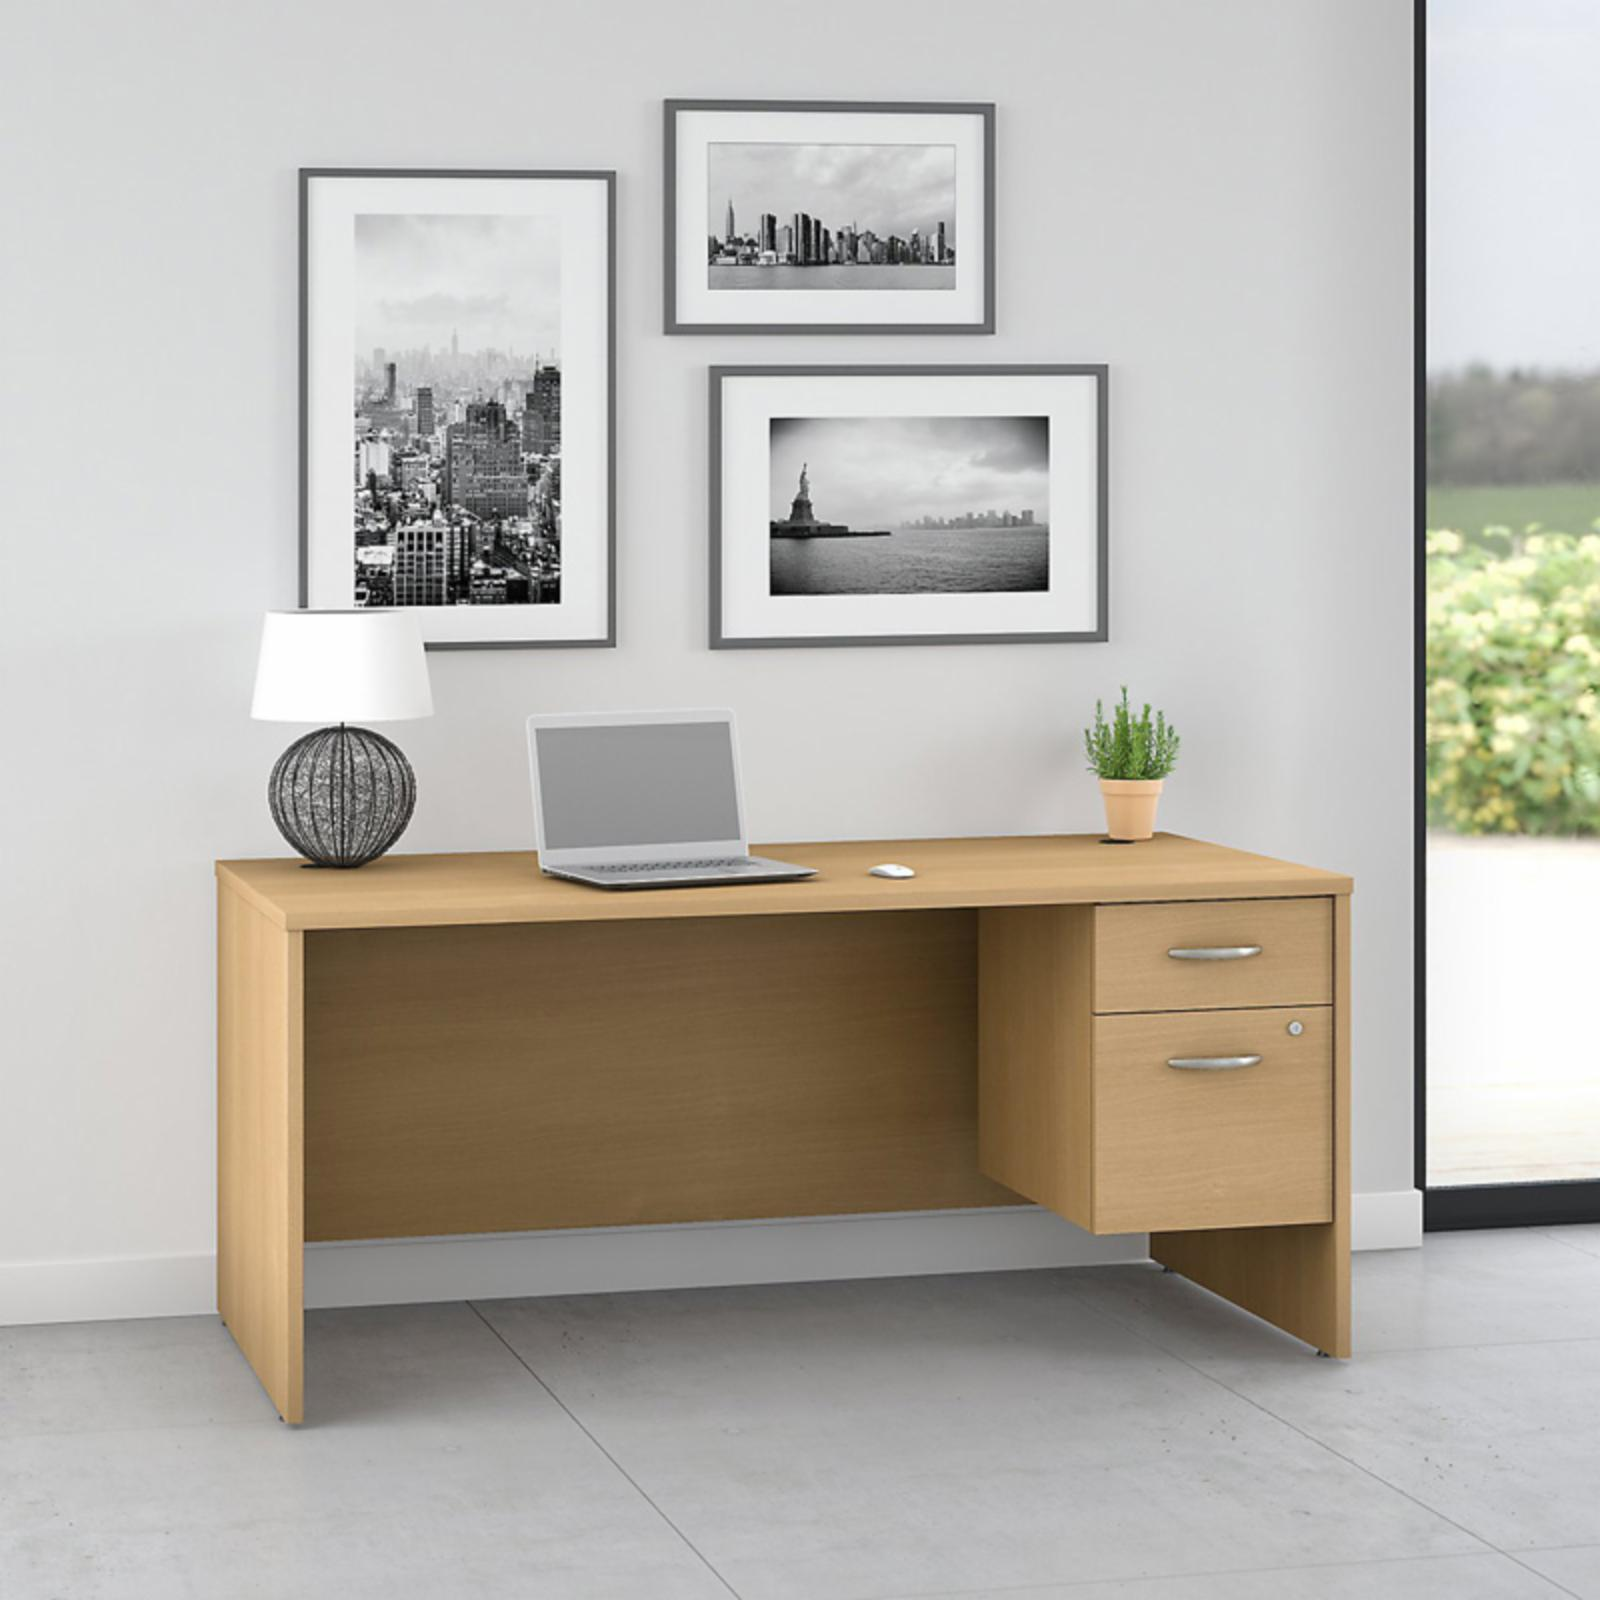 Office Connect Pro Office Computer Desk with Pedestal - PRF001LO